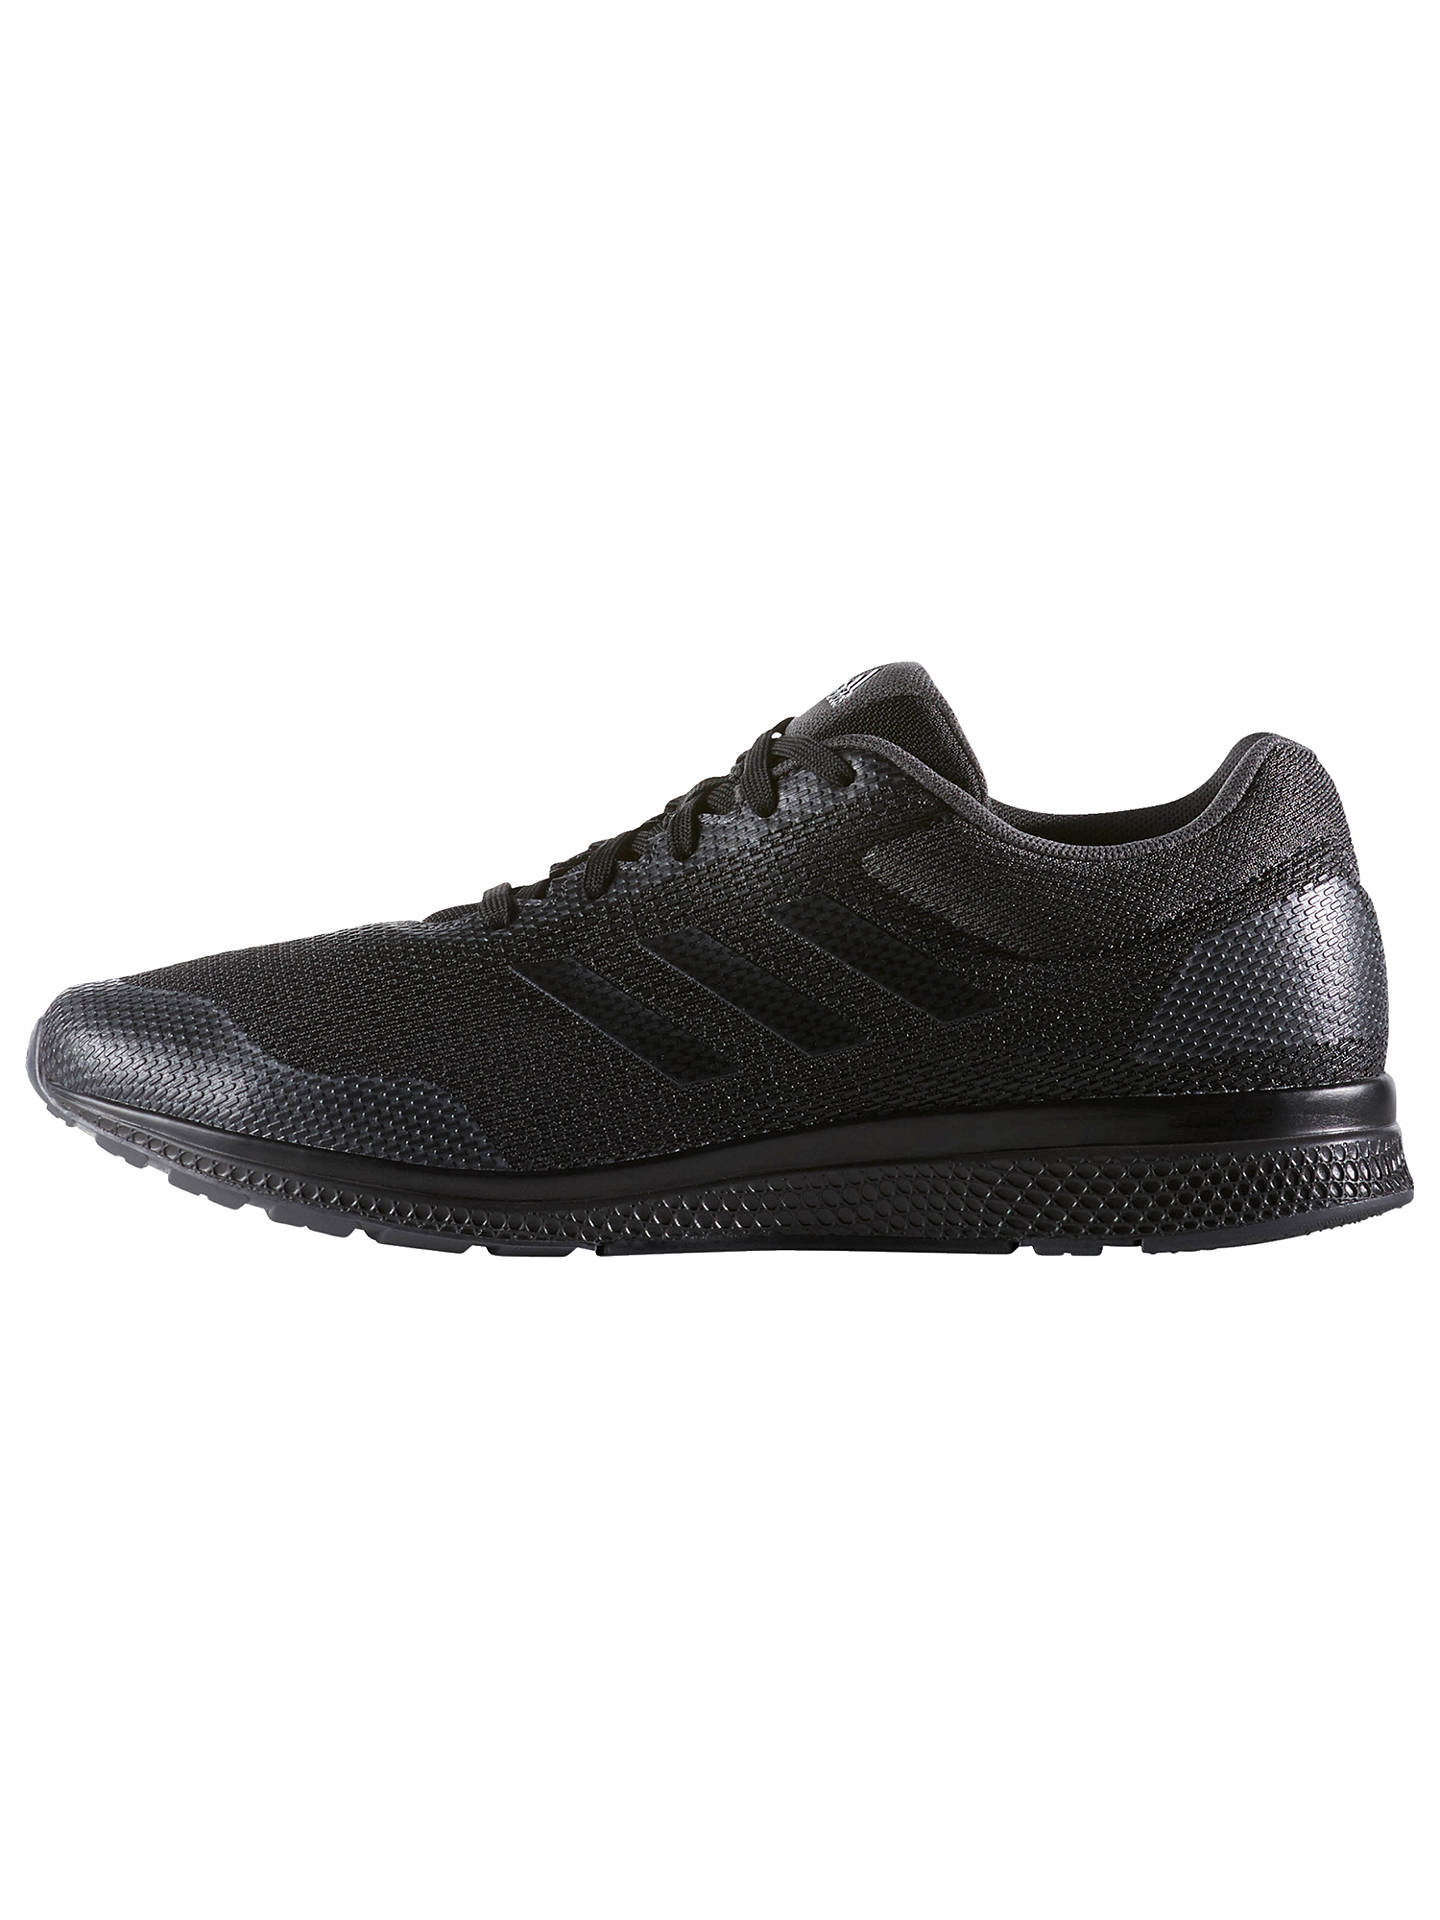 4c8a6e6b1 ... Buy adidas Mana Bounce 2.0 Men s Running Shoes